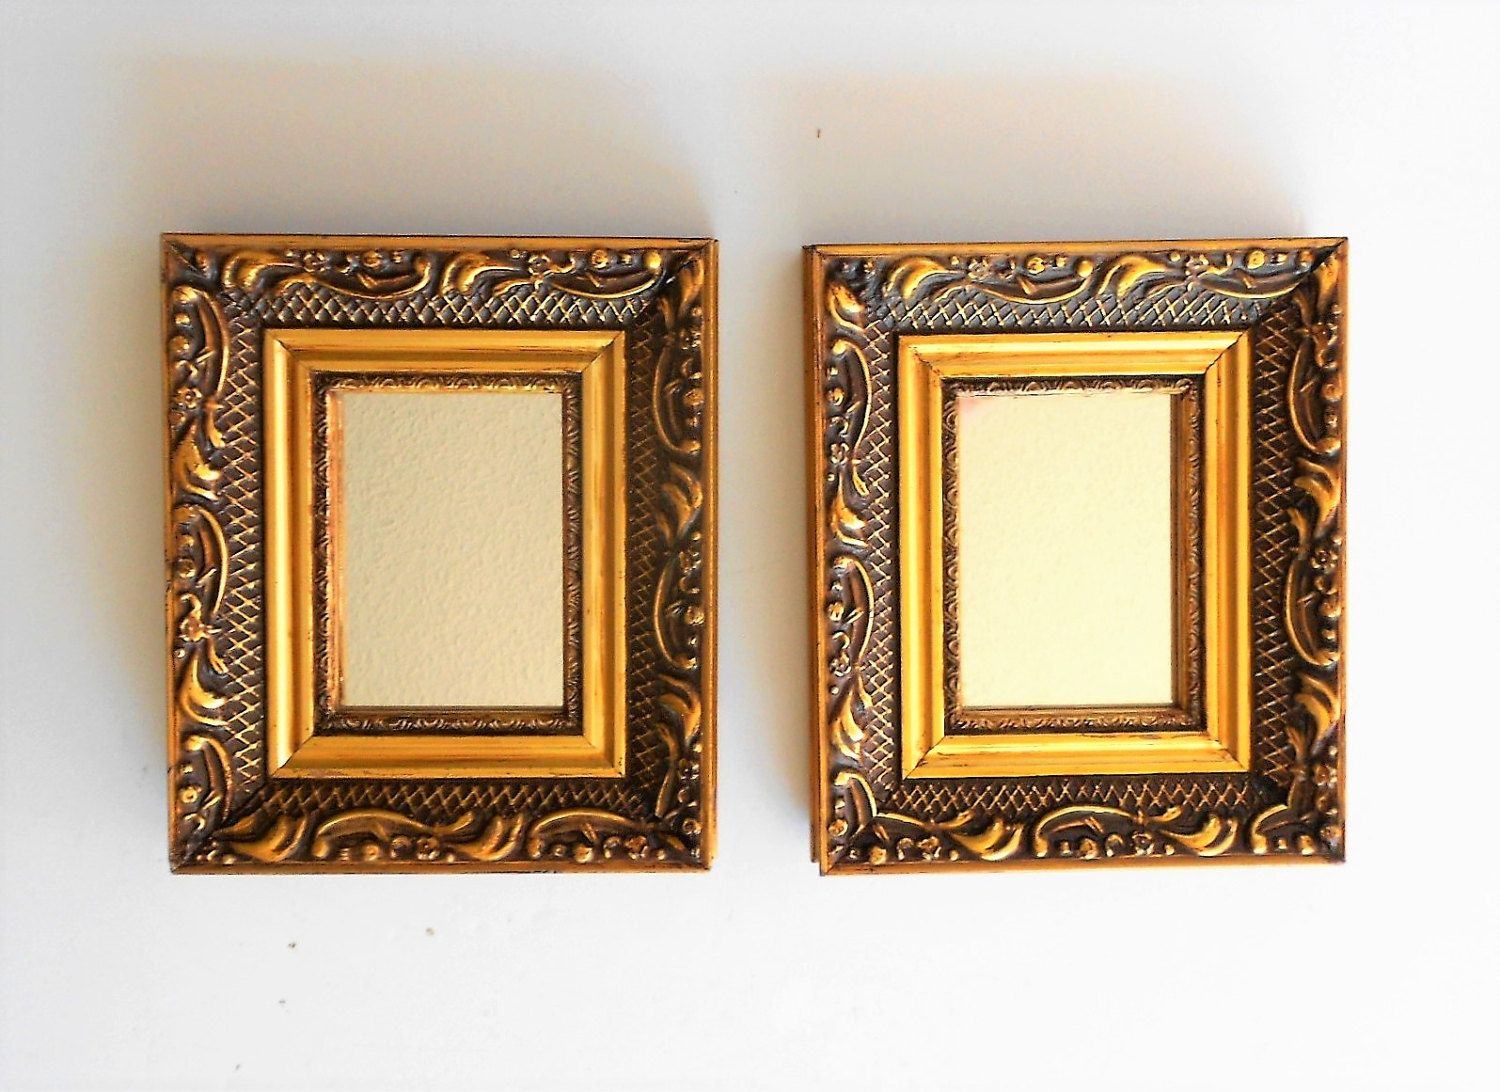 H Wall Mirrors Gold Decorative Mirrors Small Wall Mirrors - Decorative gold mirrors